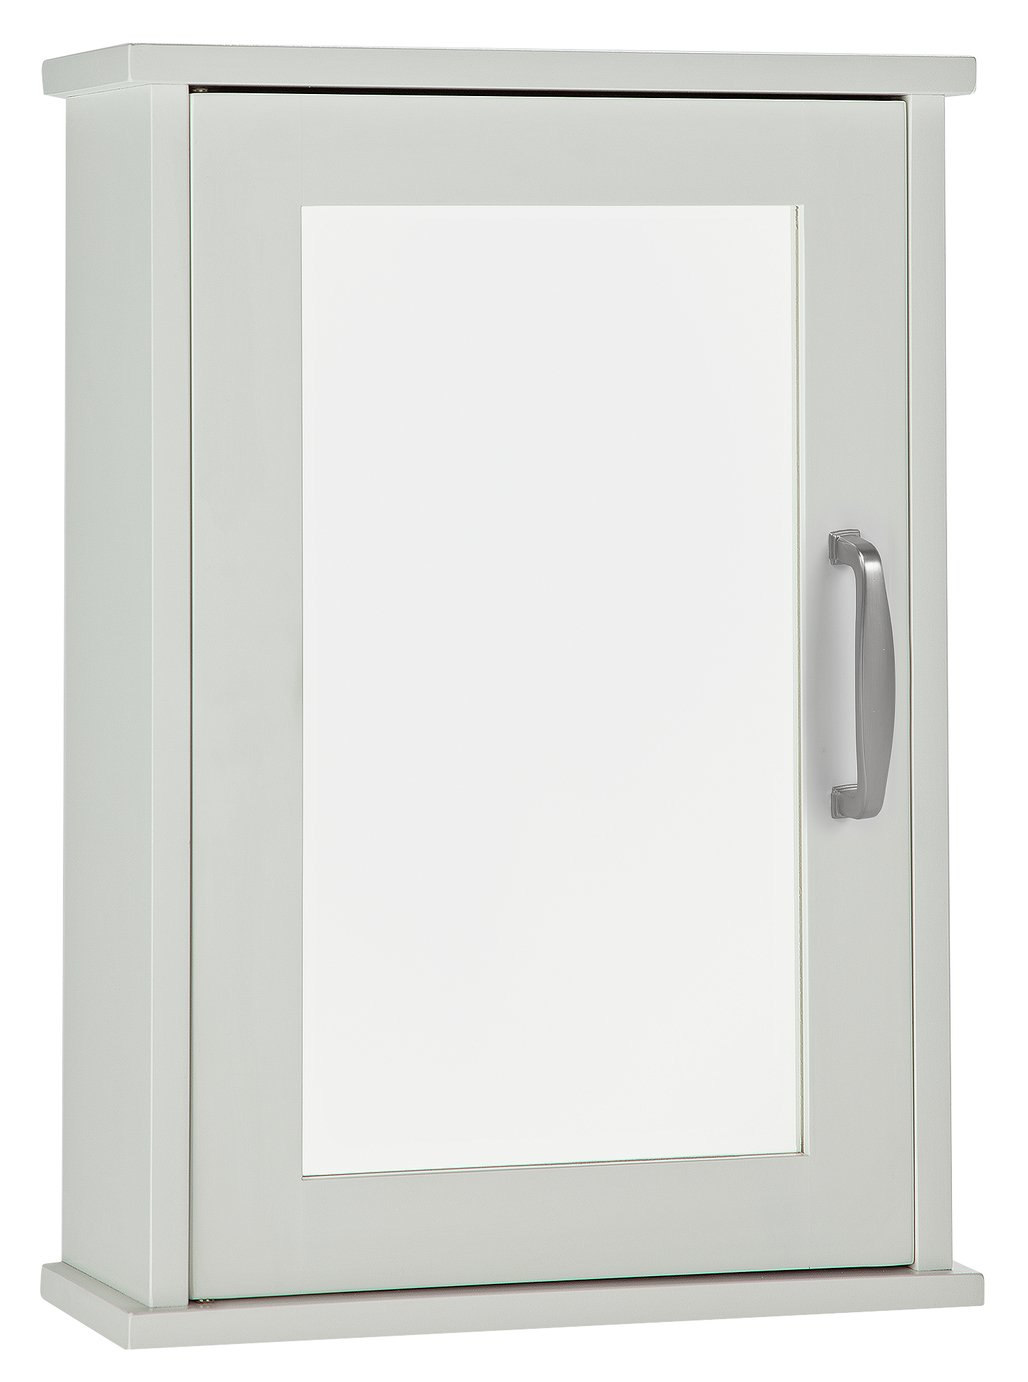 Argos Home Tongue and Groove Single Mirrored Cabinet - White